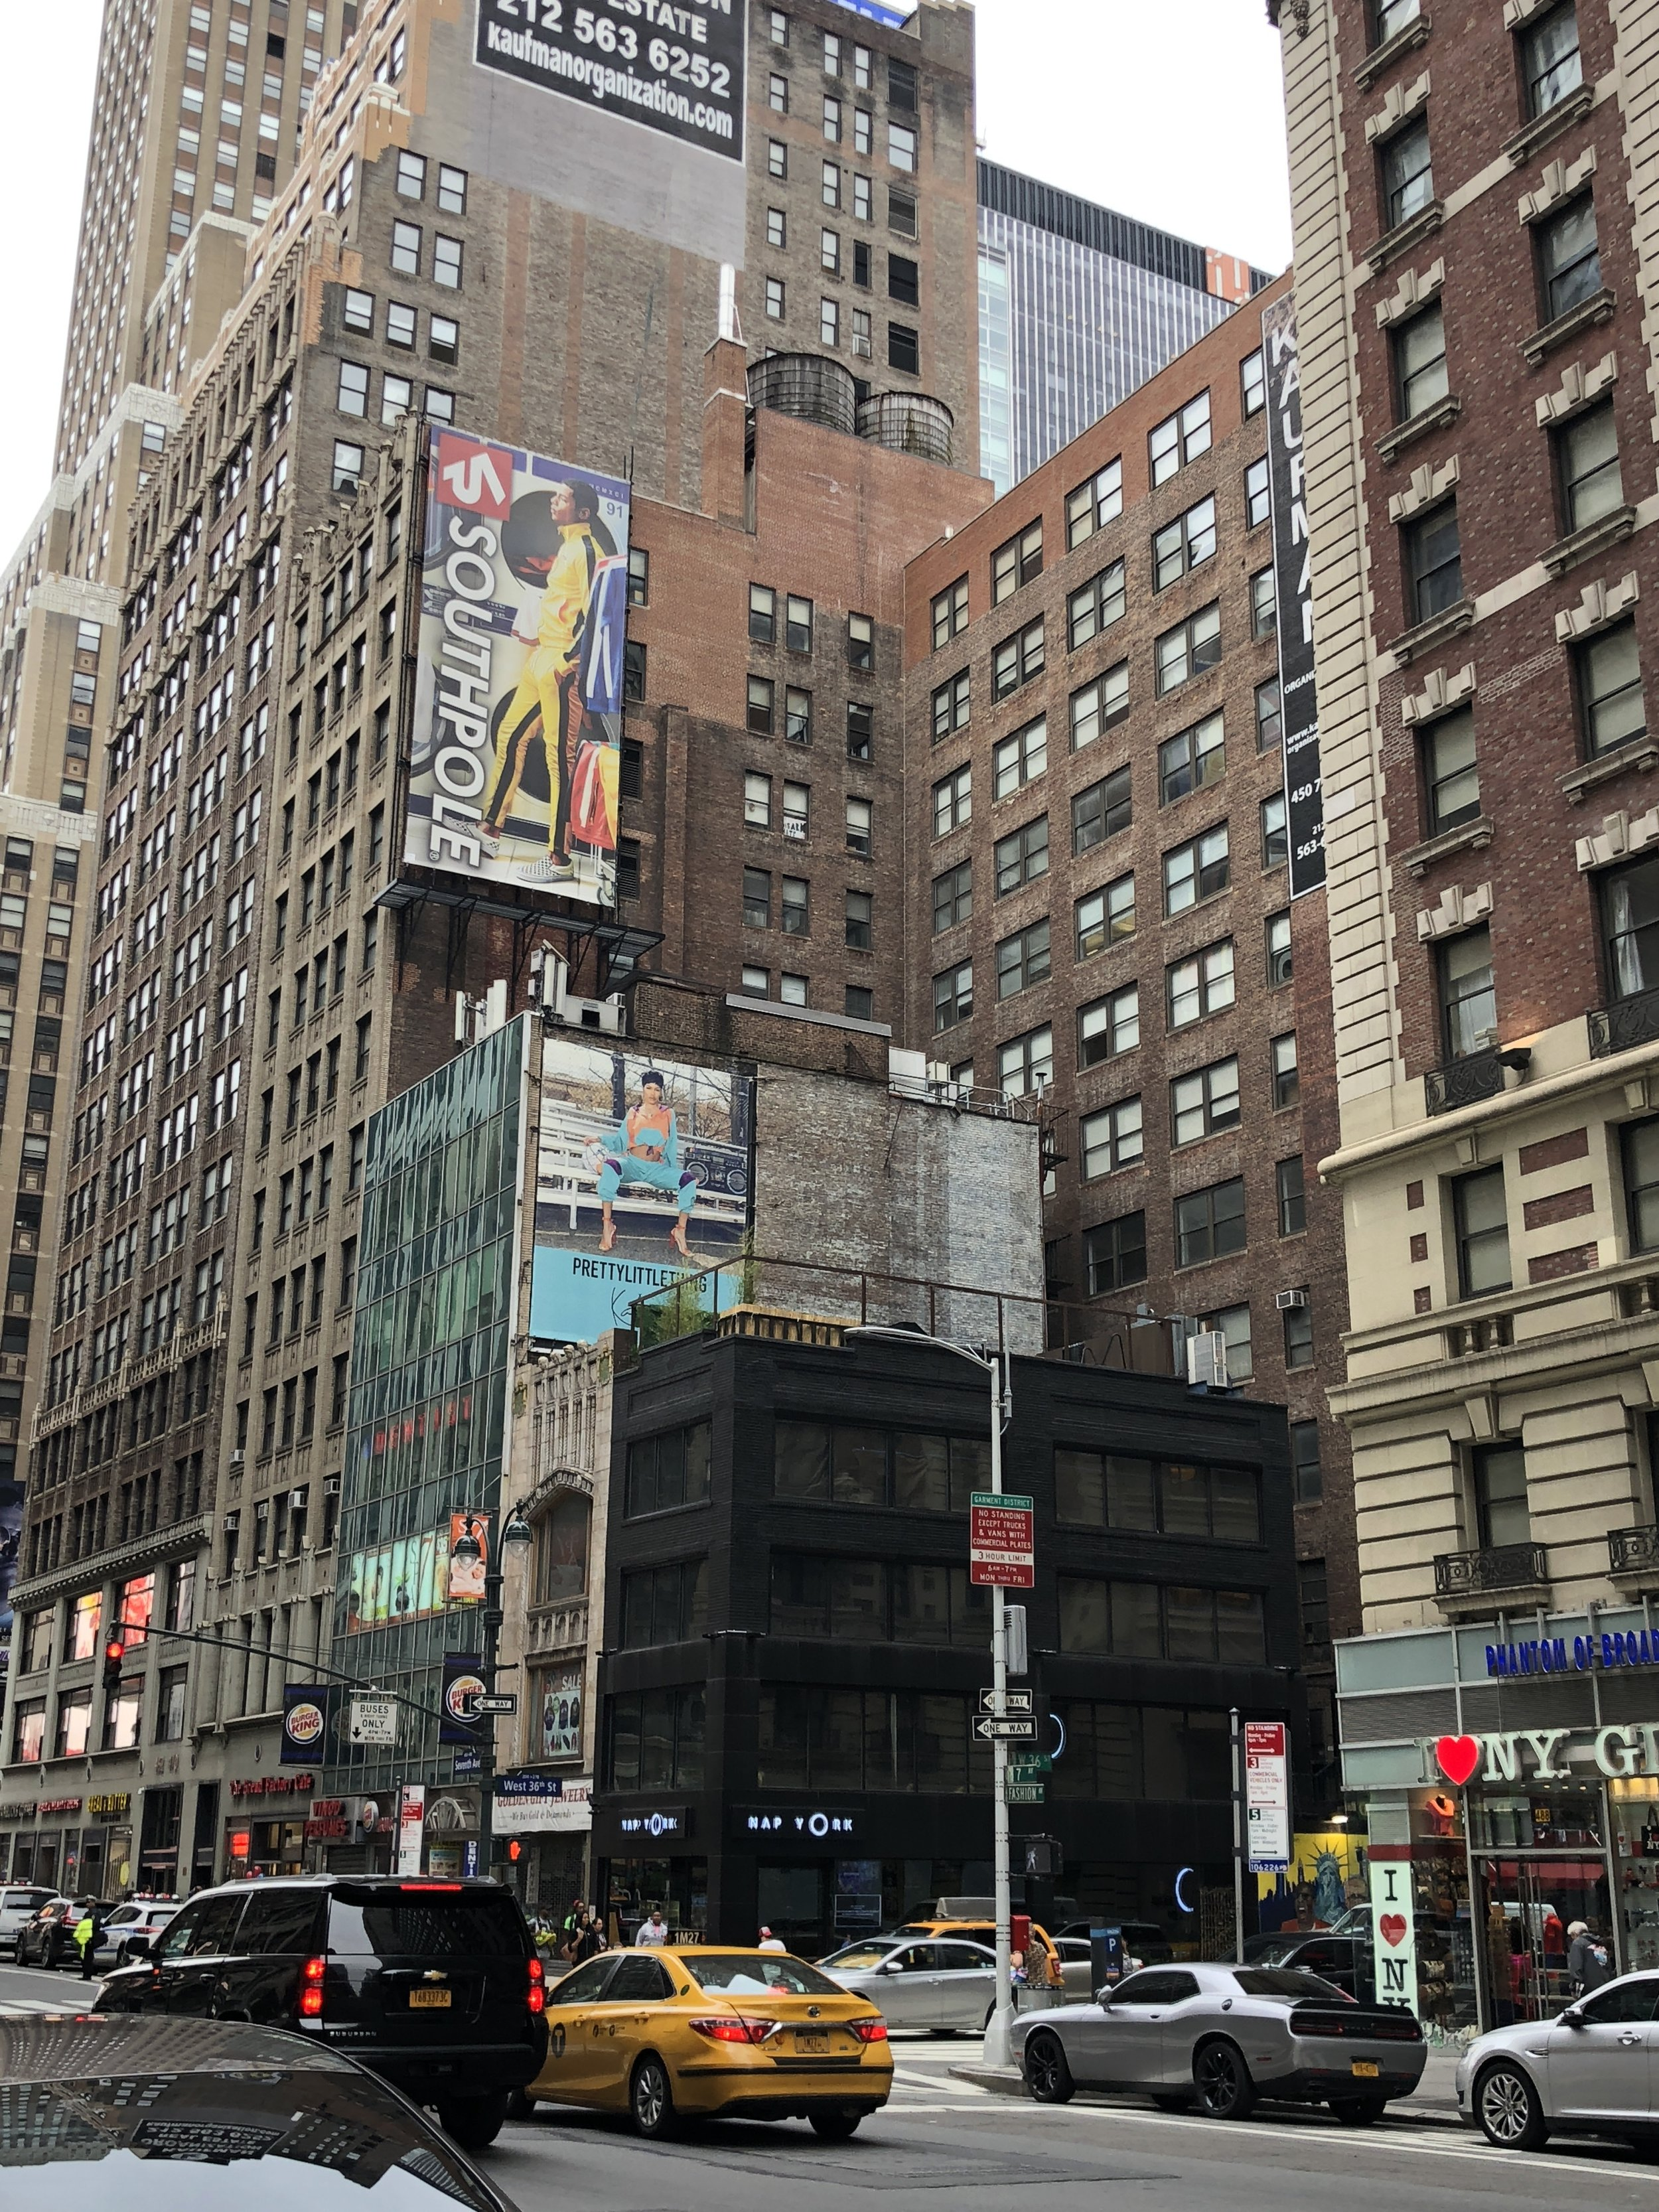 W 36th St and 7th Ave corner.